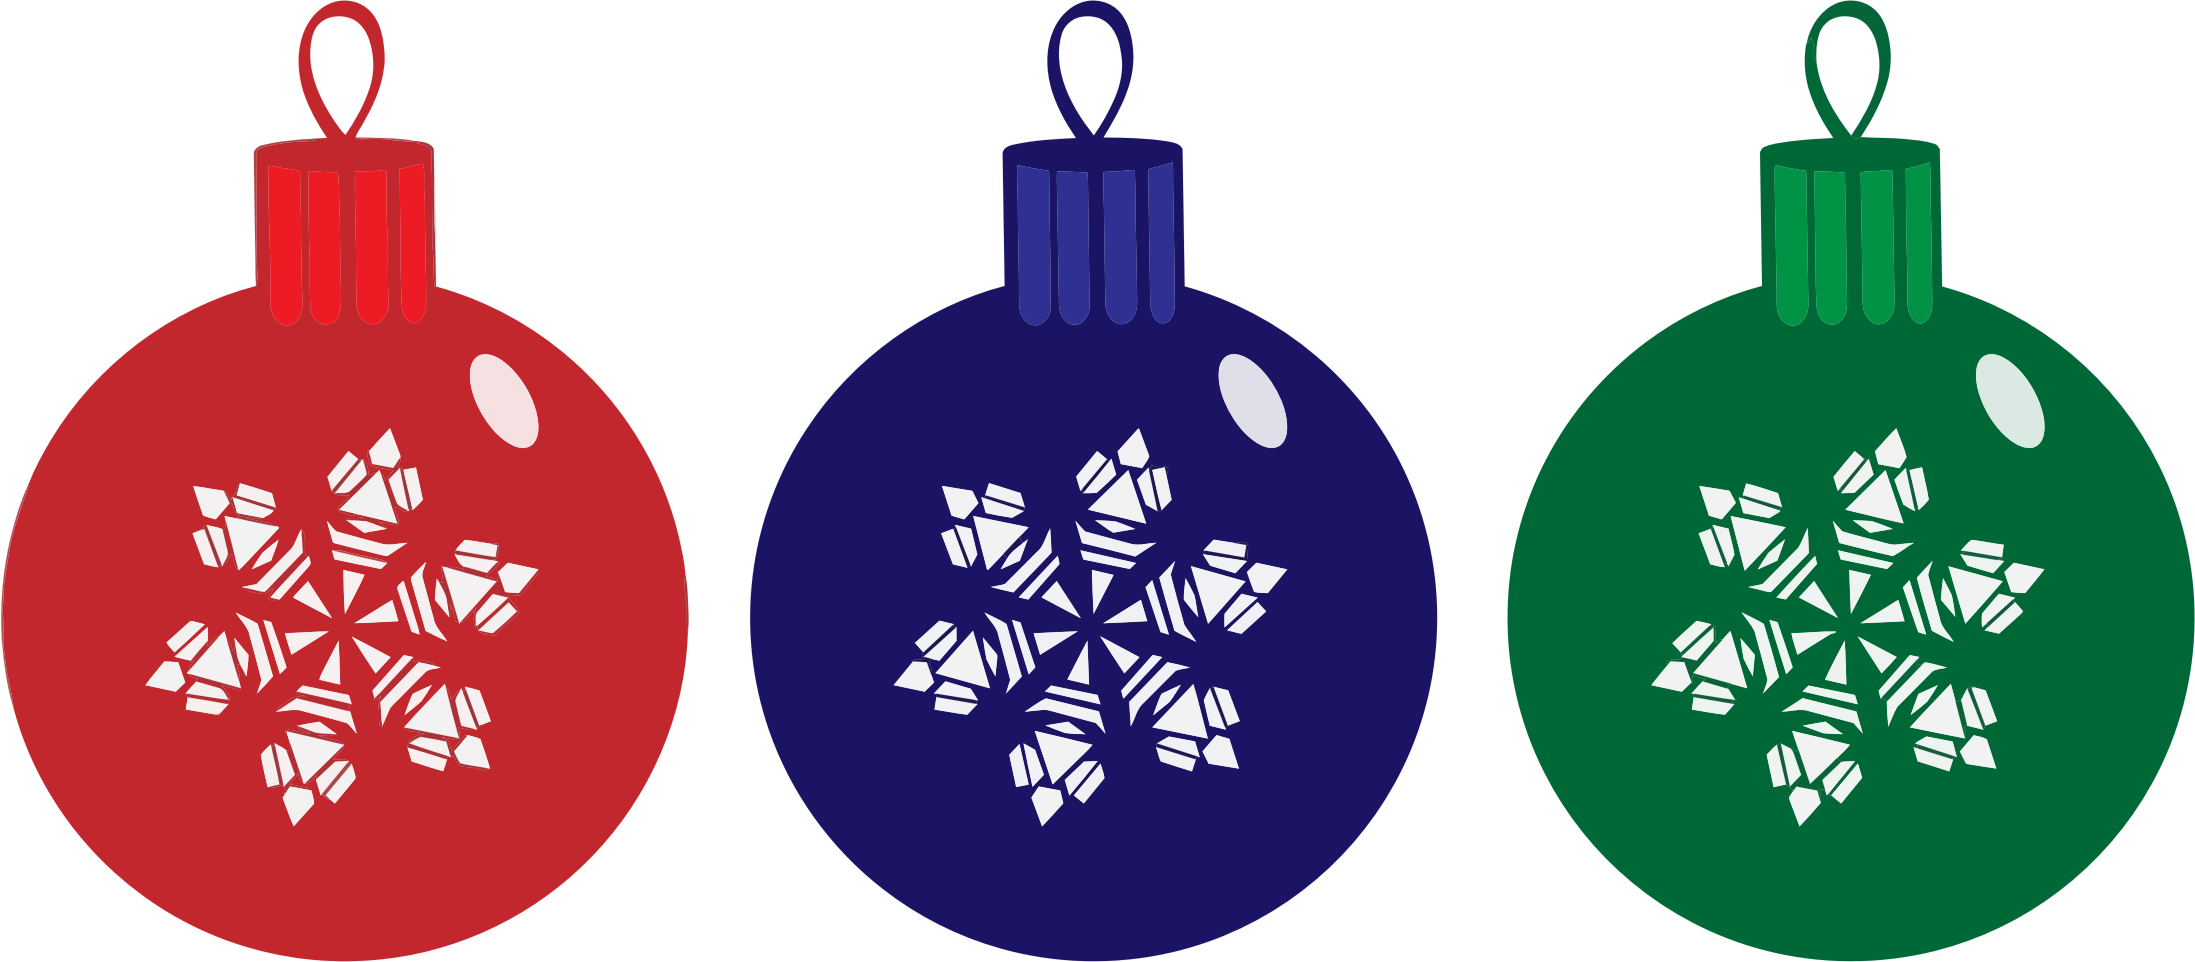 Purple clipart ornament. Rgb christmas ornaments icons